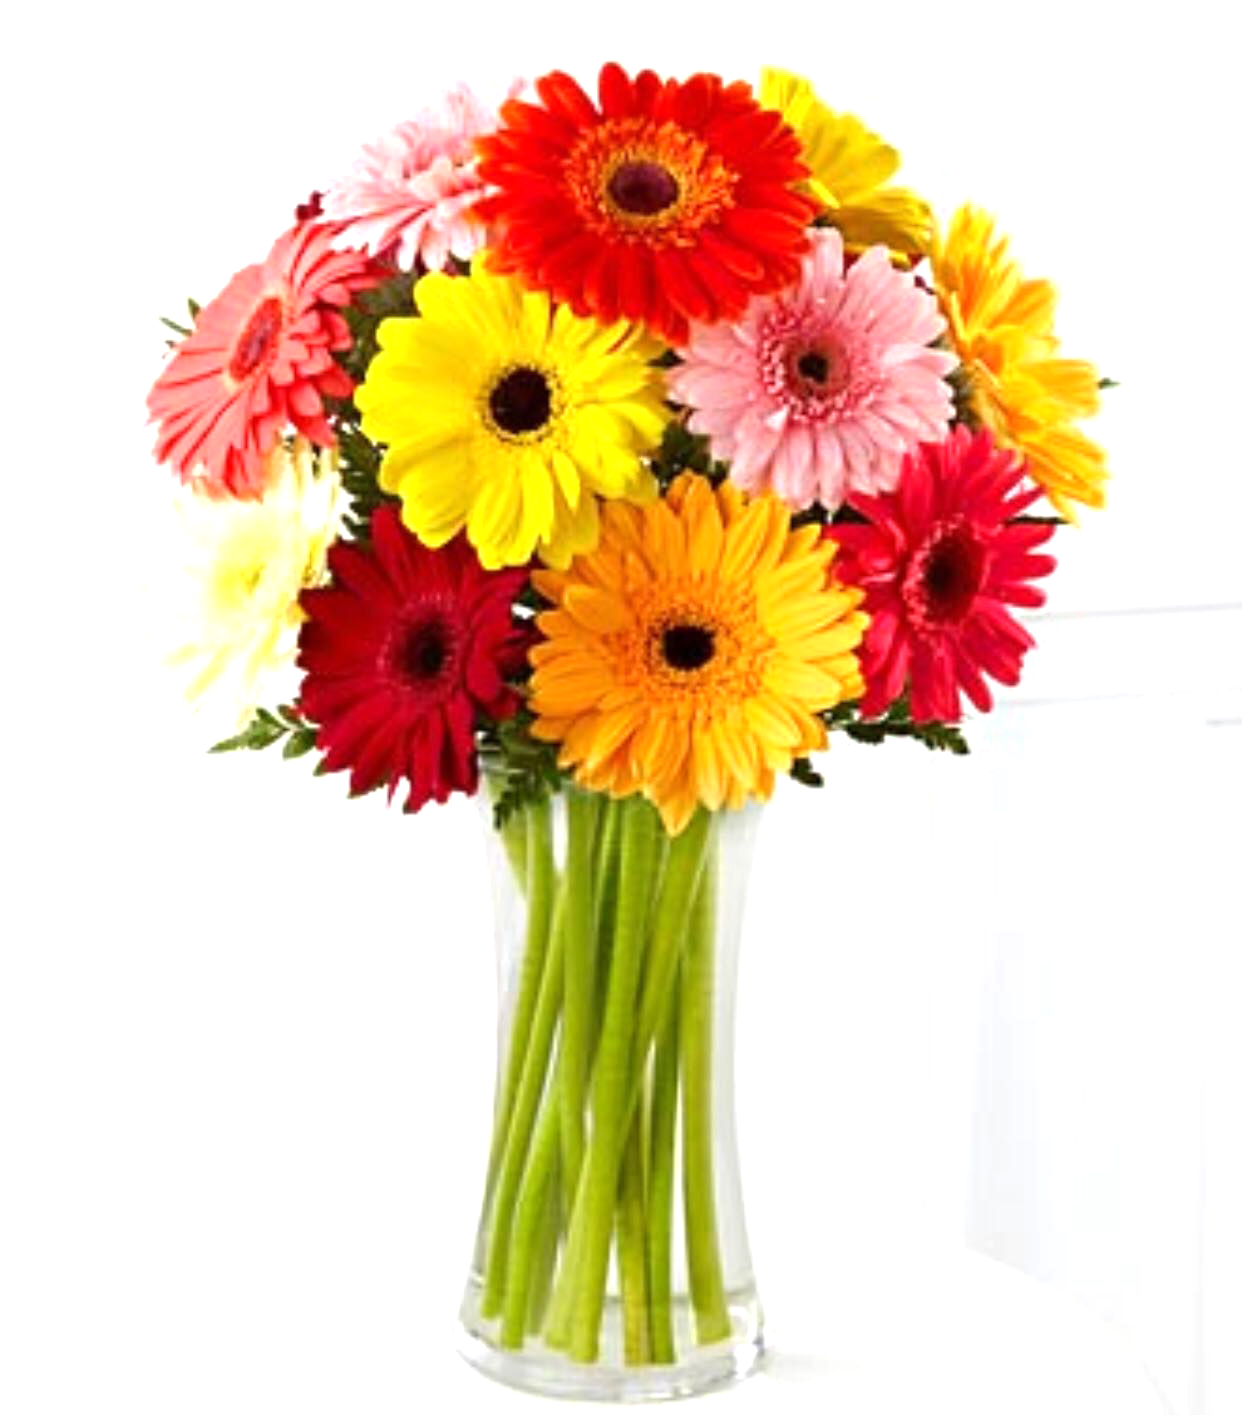 Gerbera Daisy Arrangements Vases: 12 Gerber Daisies In A Clear Vase